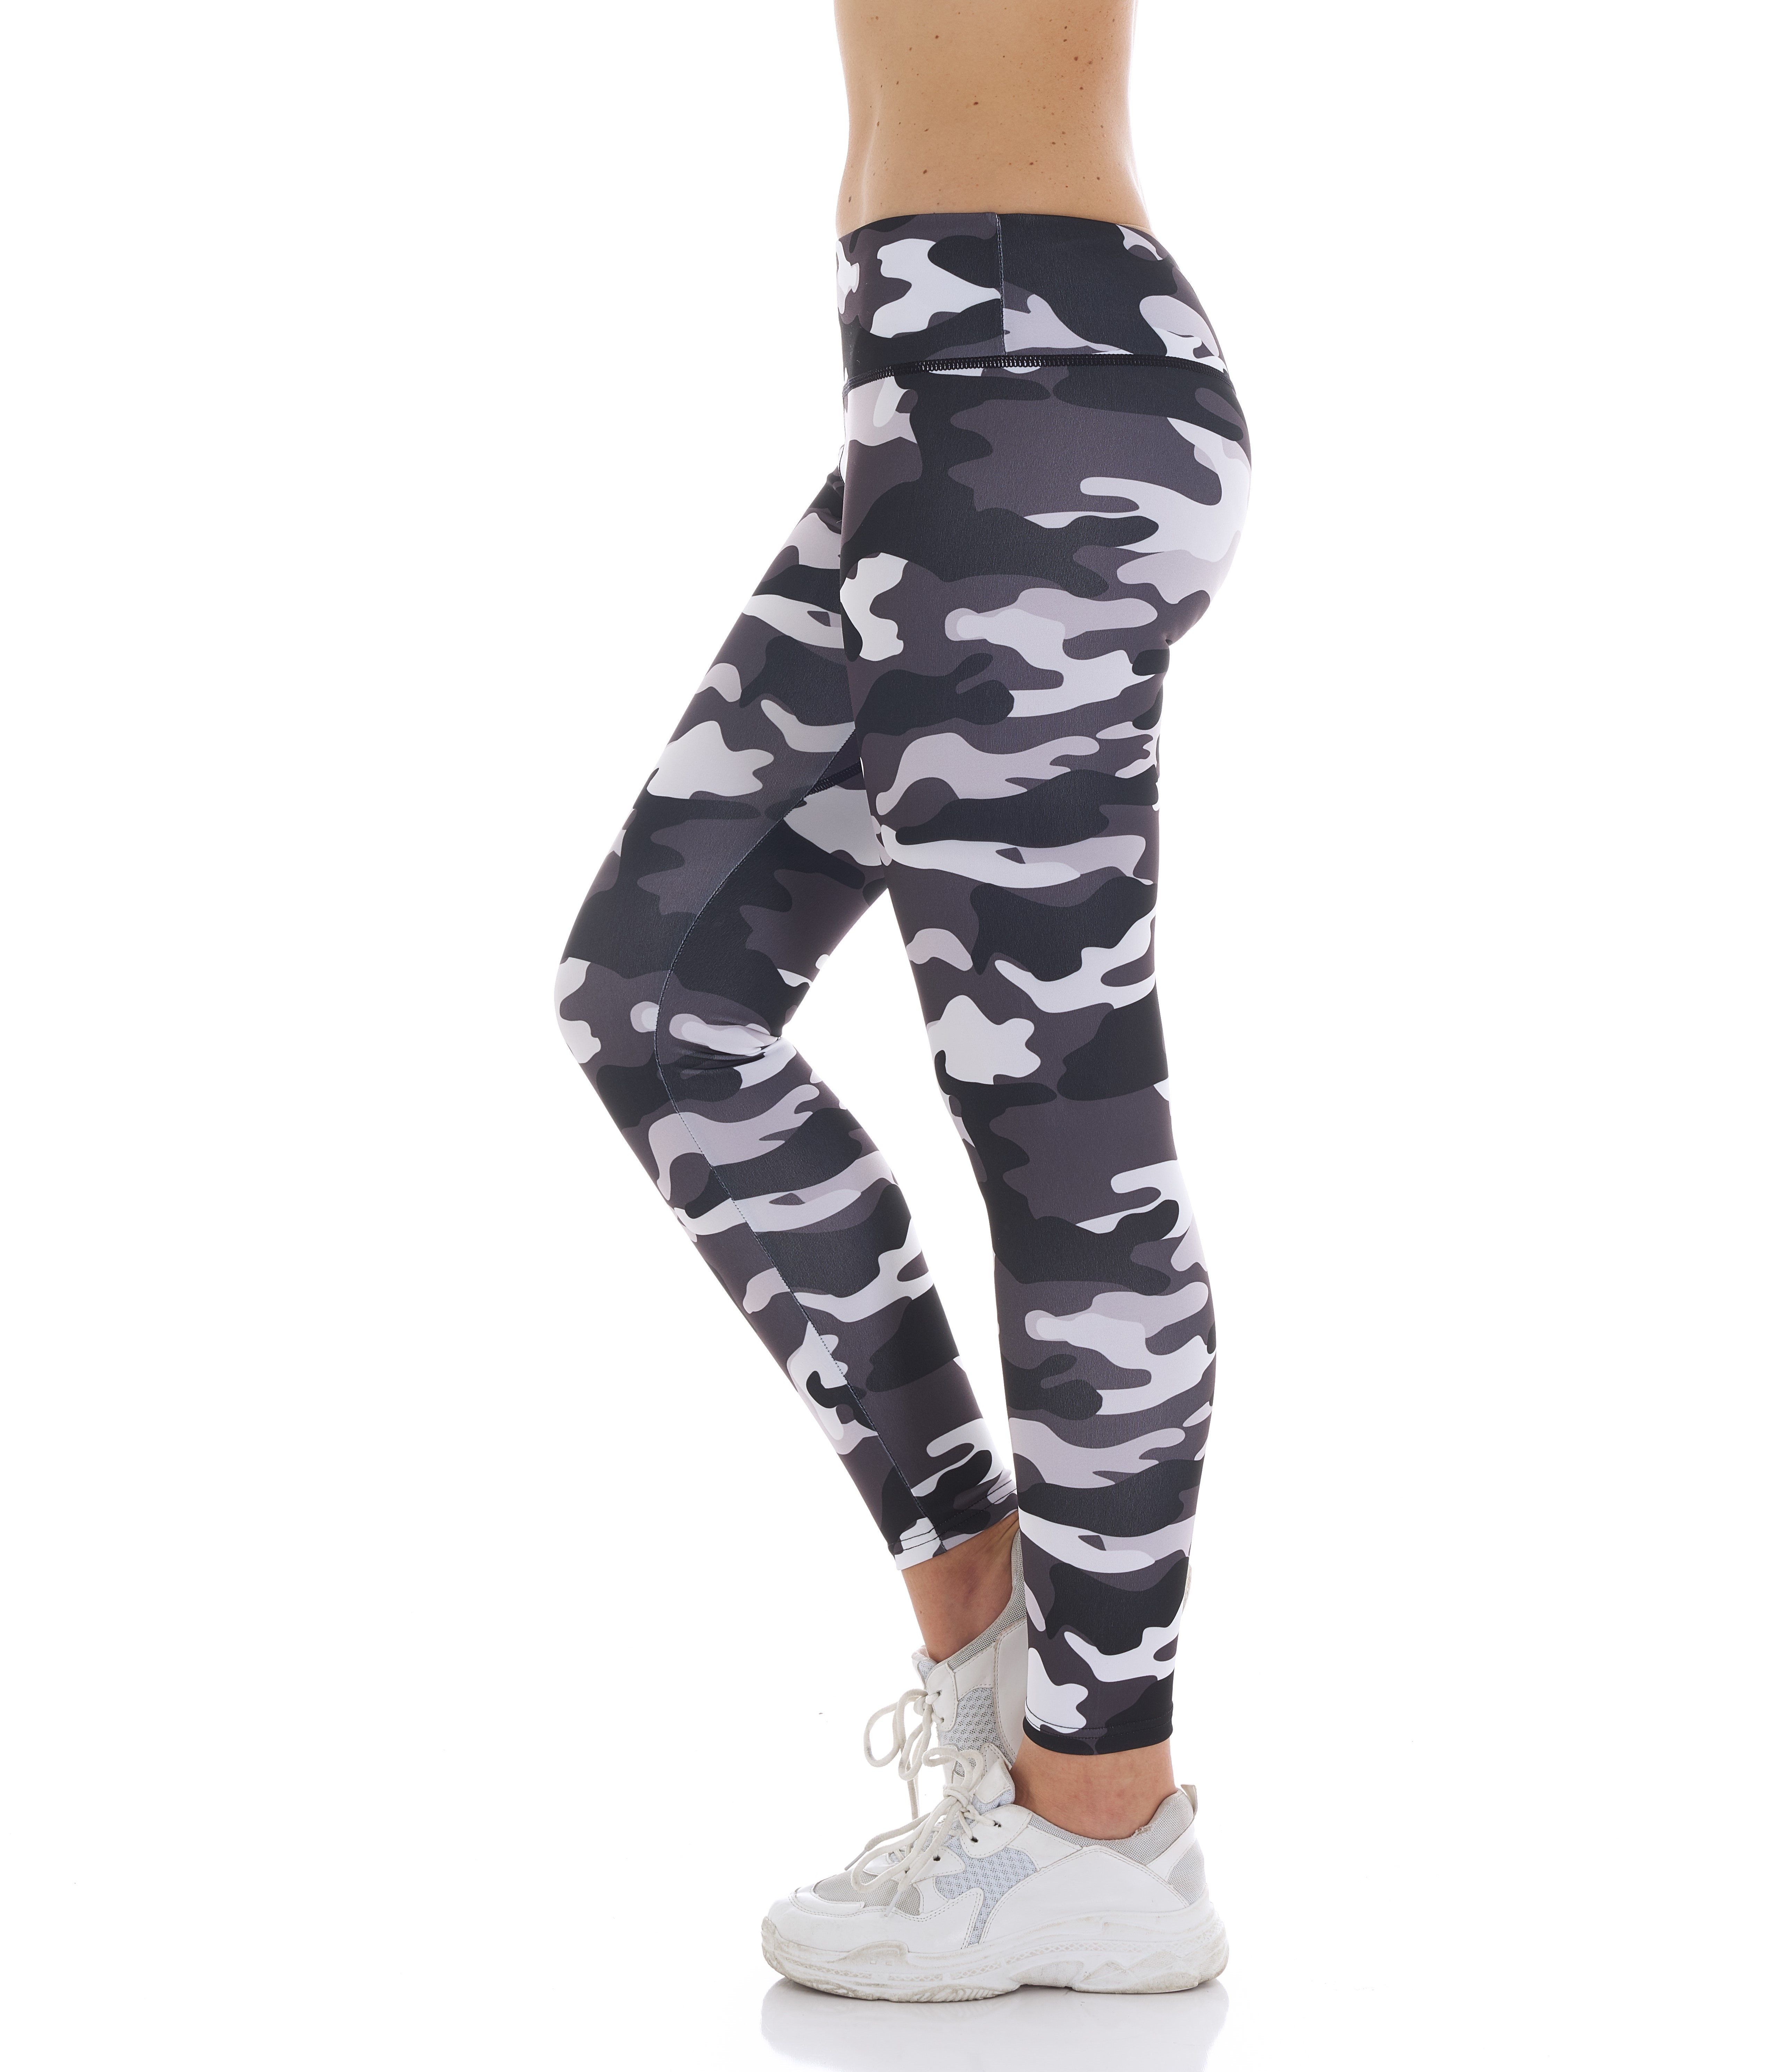 Women's Active High Rise Camo 7/8 Legging by Bsp